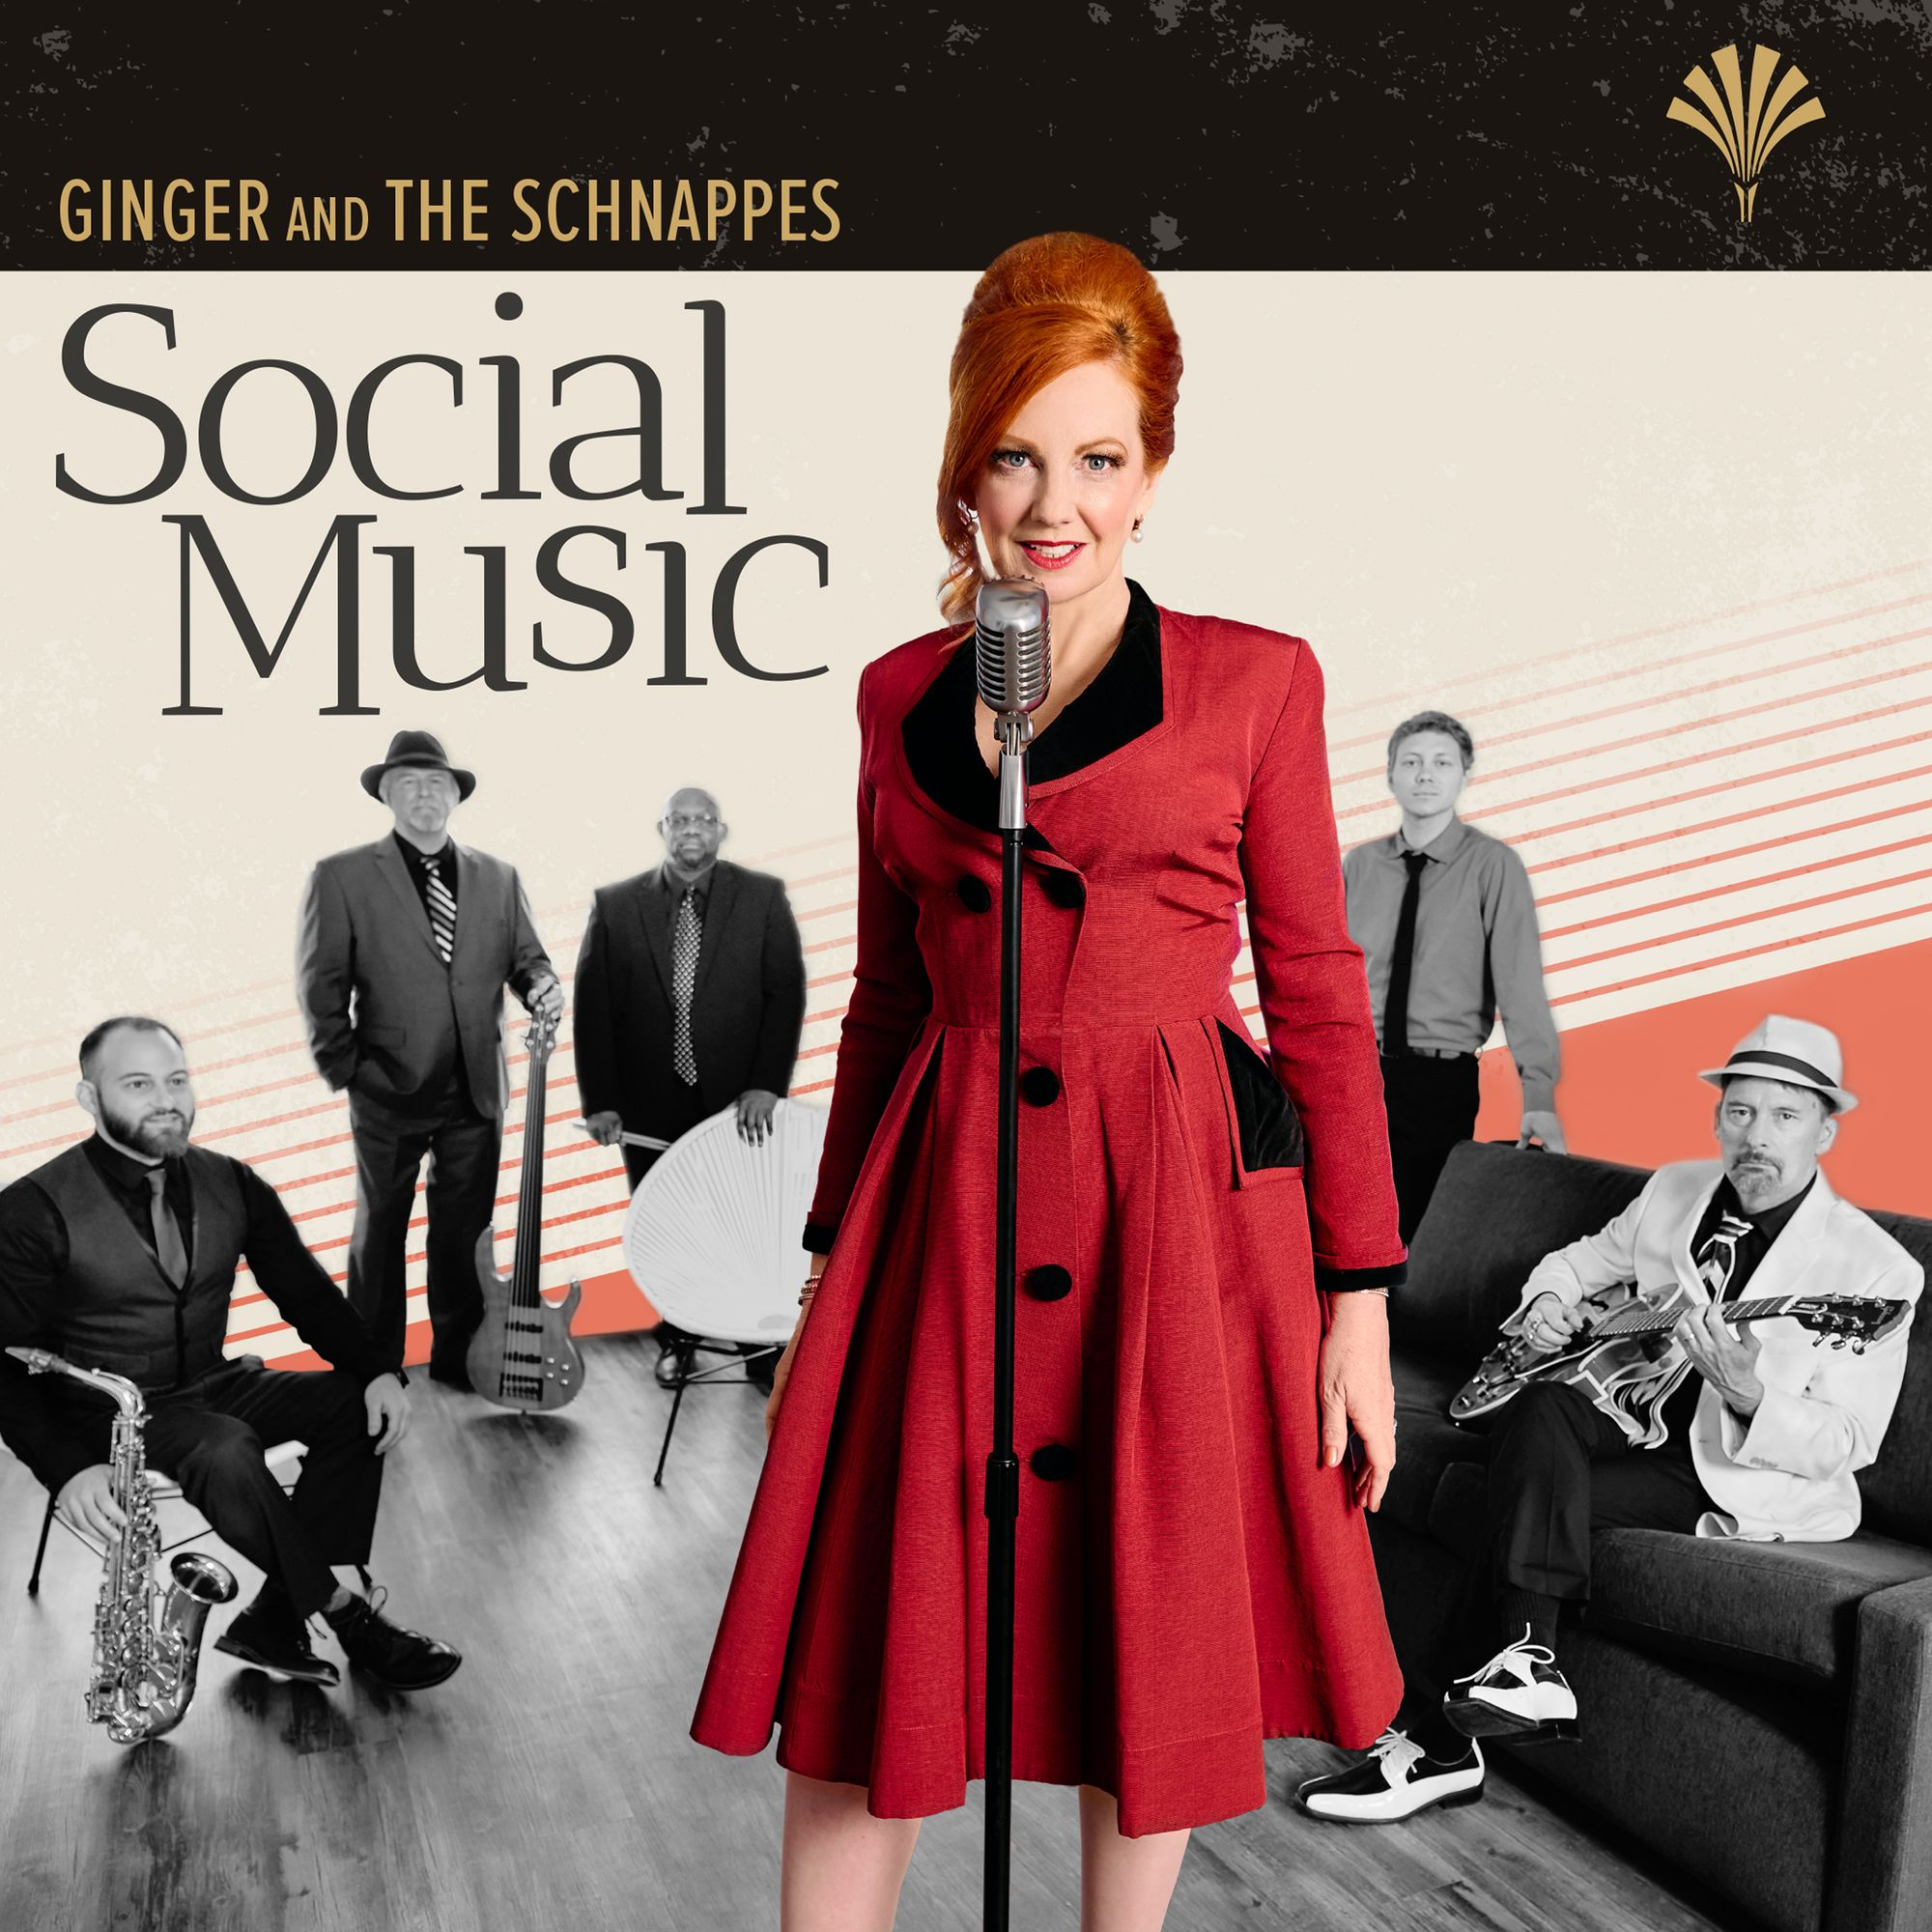 A true force in the world of Jazz: Presenting to the world Ginger and The Schnappes